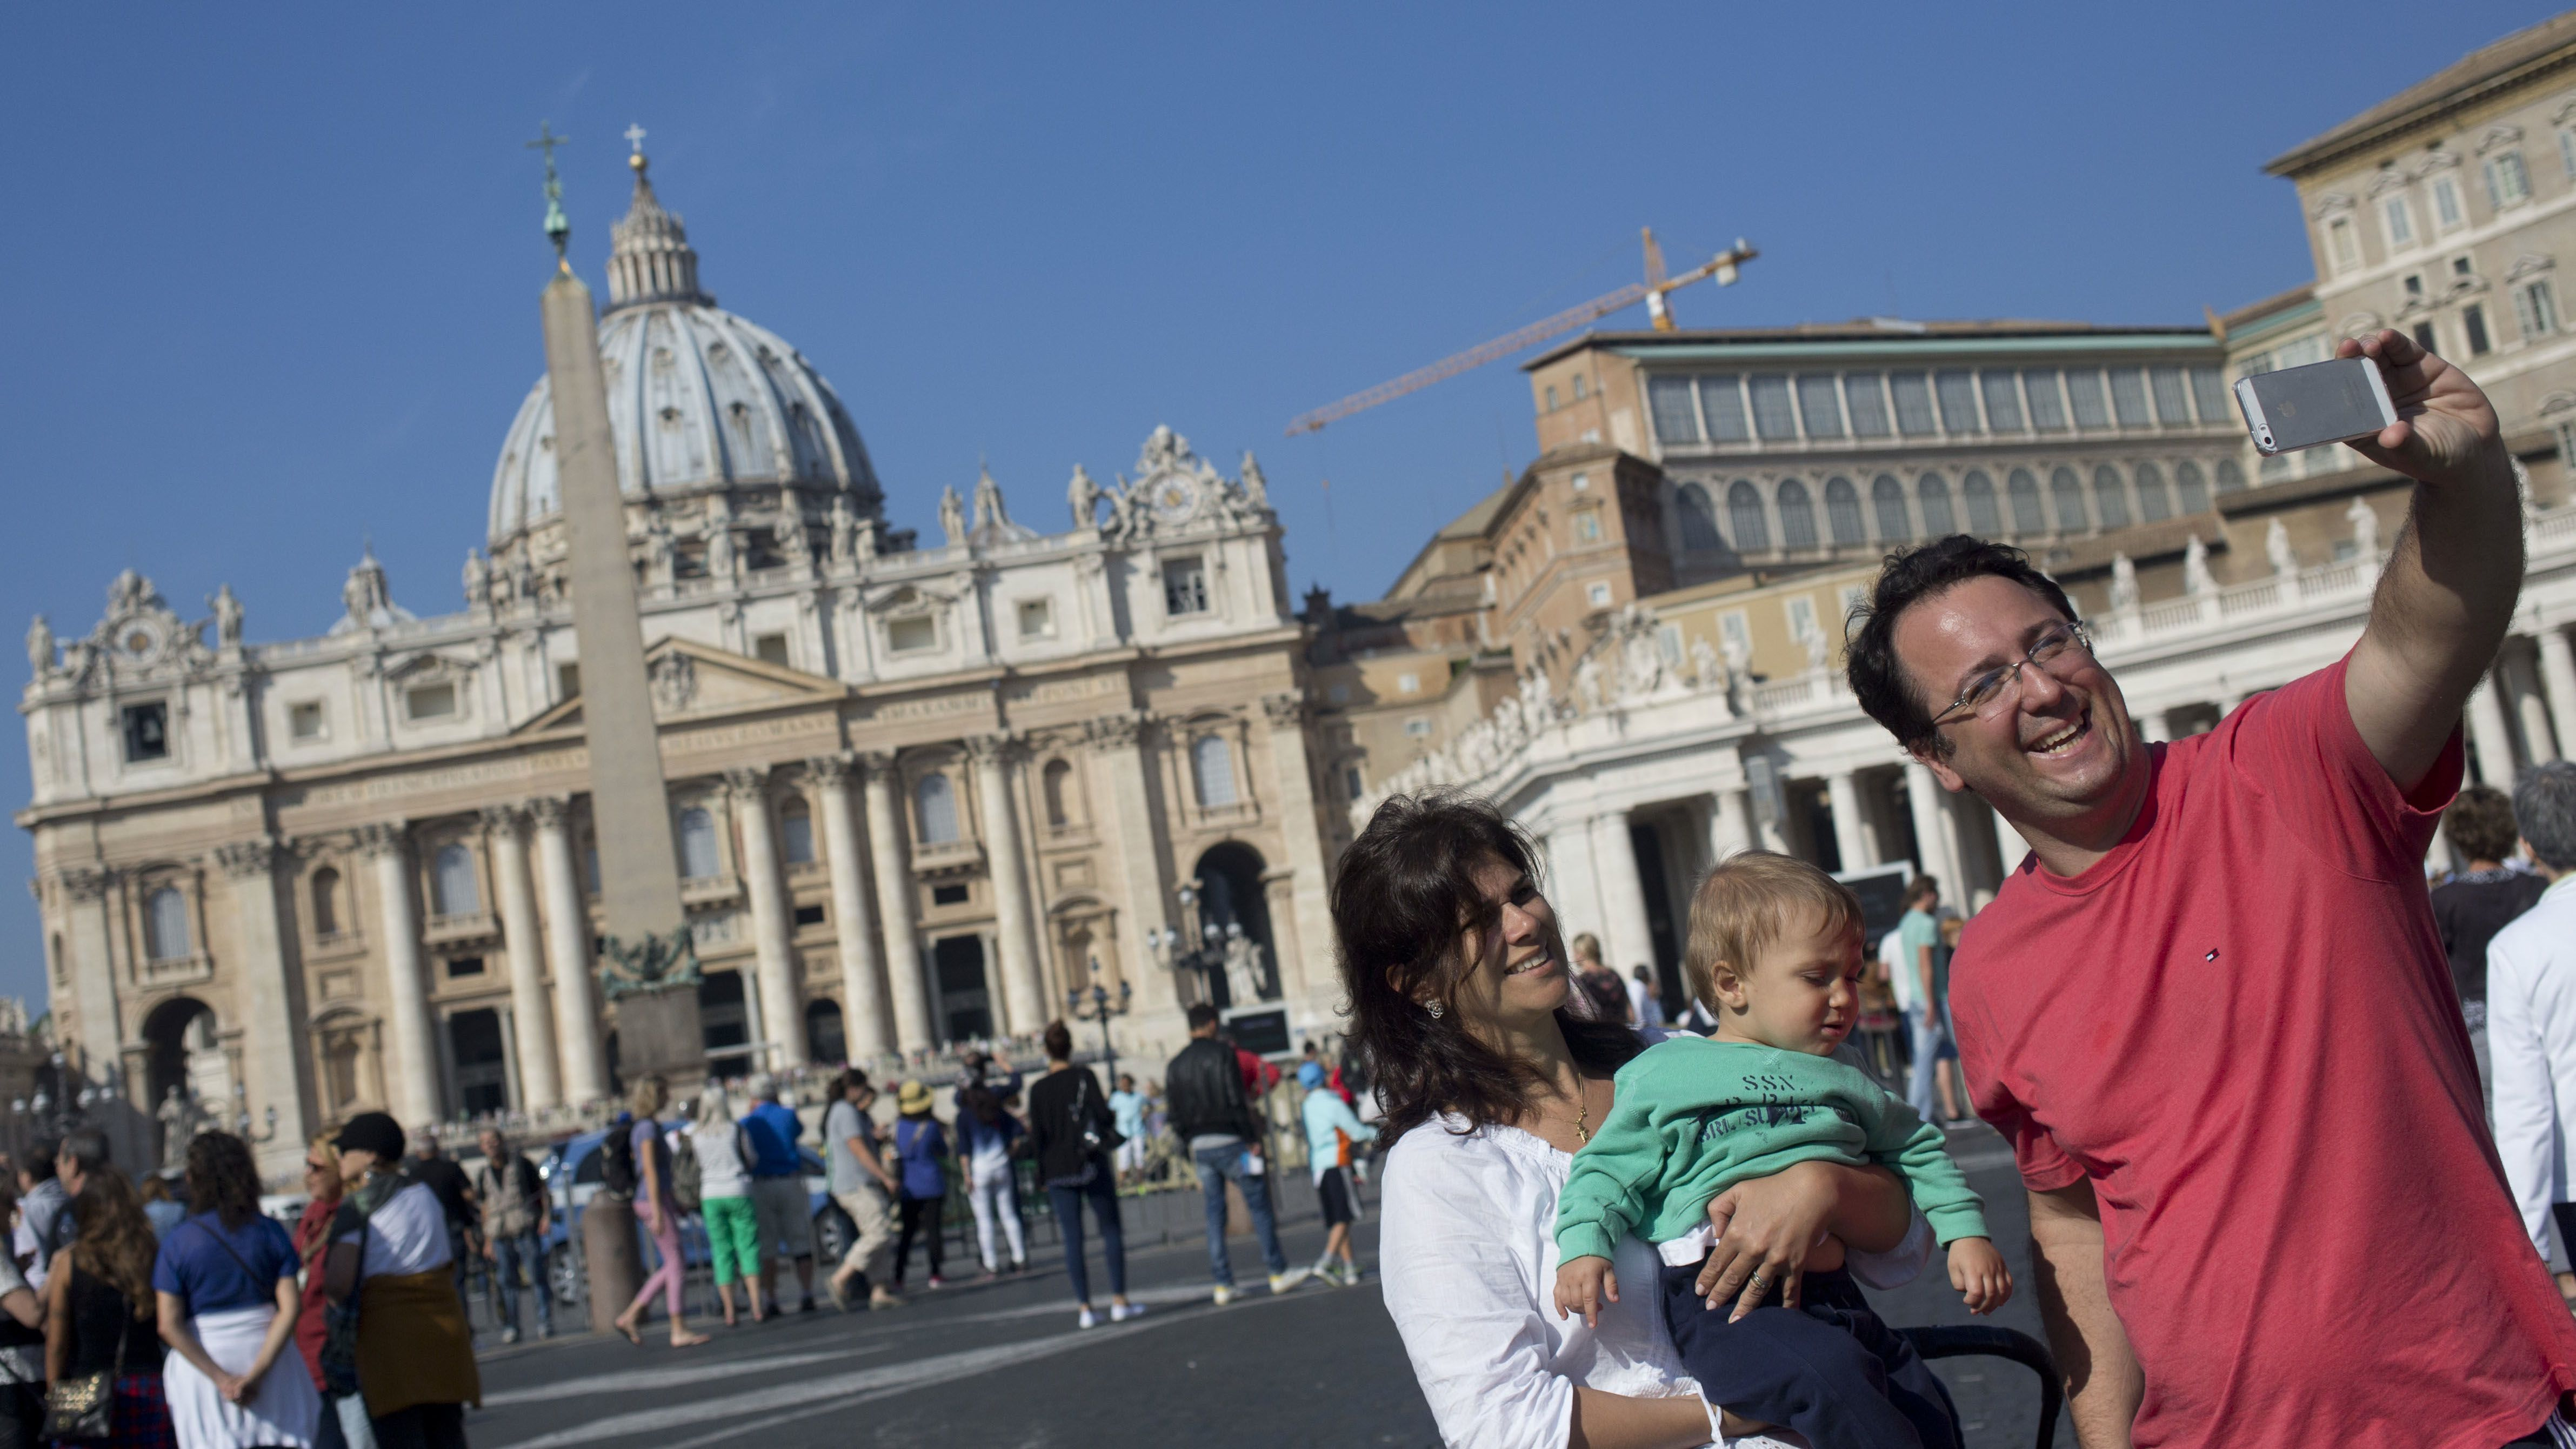 """A family take a """"selfie"""" in front of St. Peter's Basilica at the Vatican, Saturday, Oct. 4, 2014. Pope Francis on Sunday will open a two-week meeting of bishops and cardinals from around the world aimed at making the church's teaching on family life — marriage, sex, contraception, divorce and homosexuality — relevant to today's Catholic families and more readily understood and appreciated.  (AP Photo/Alessandra Tarantino)"""